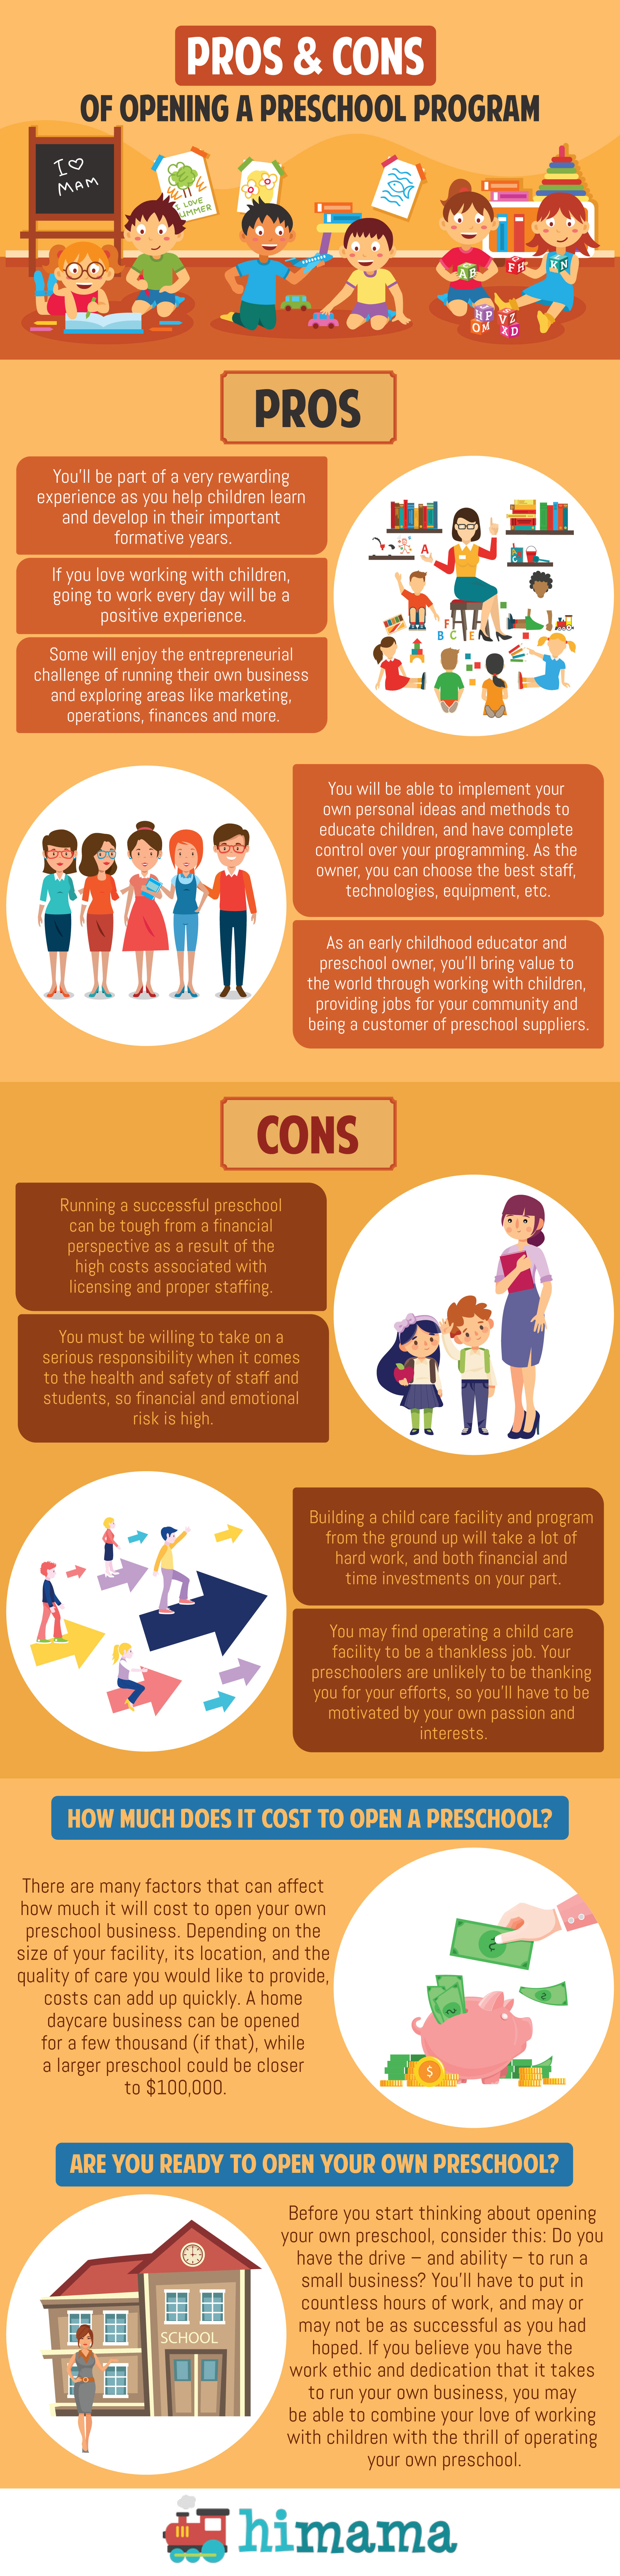 opening a preschool infographic